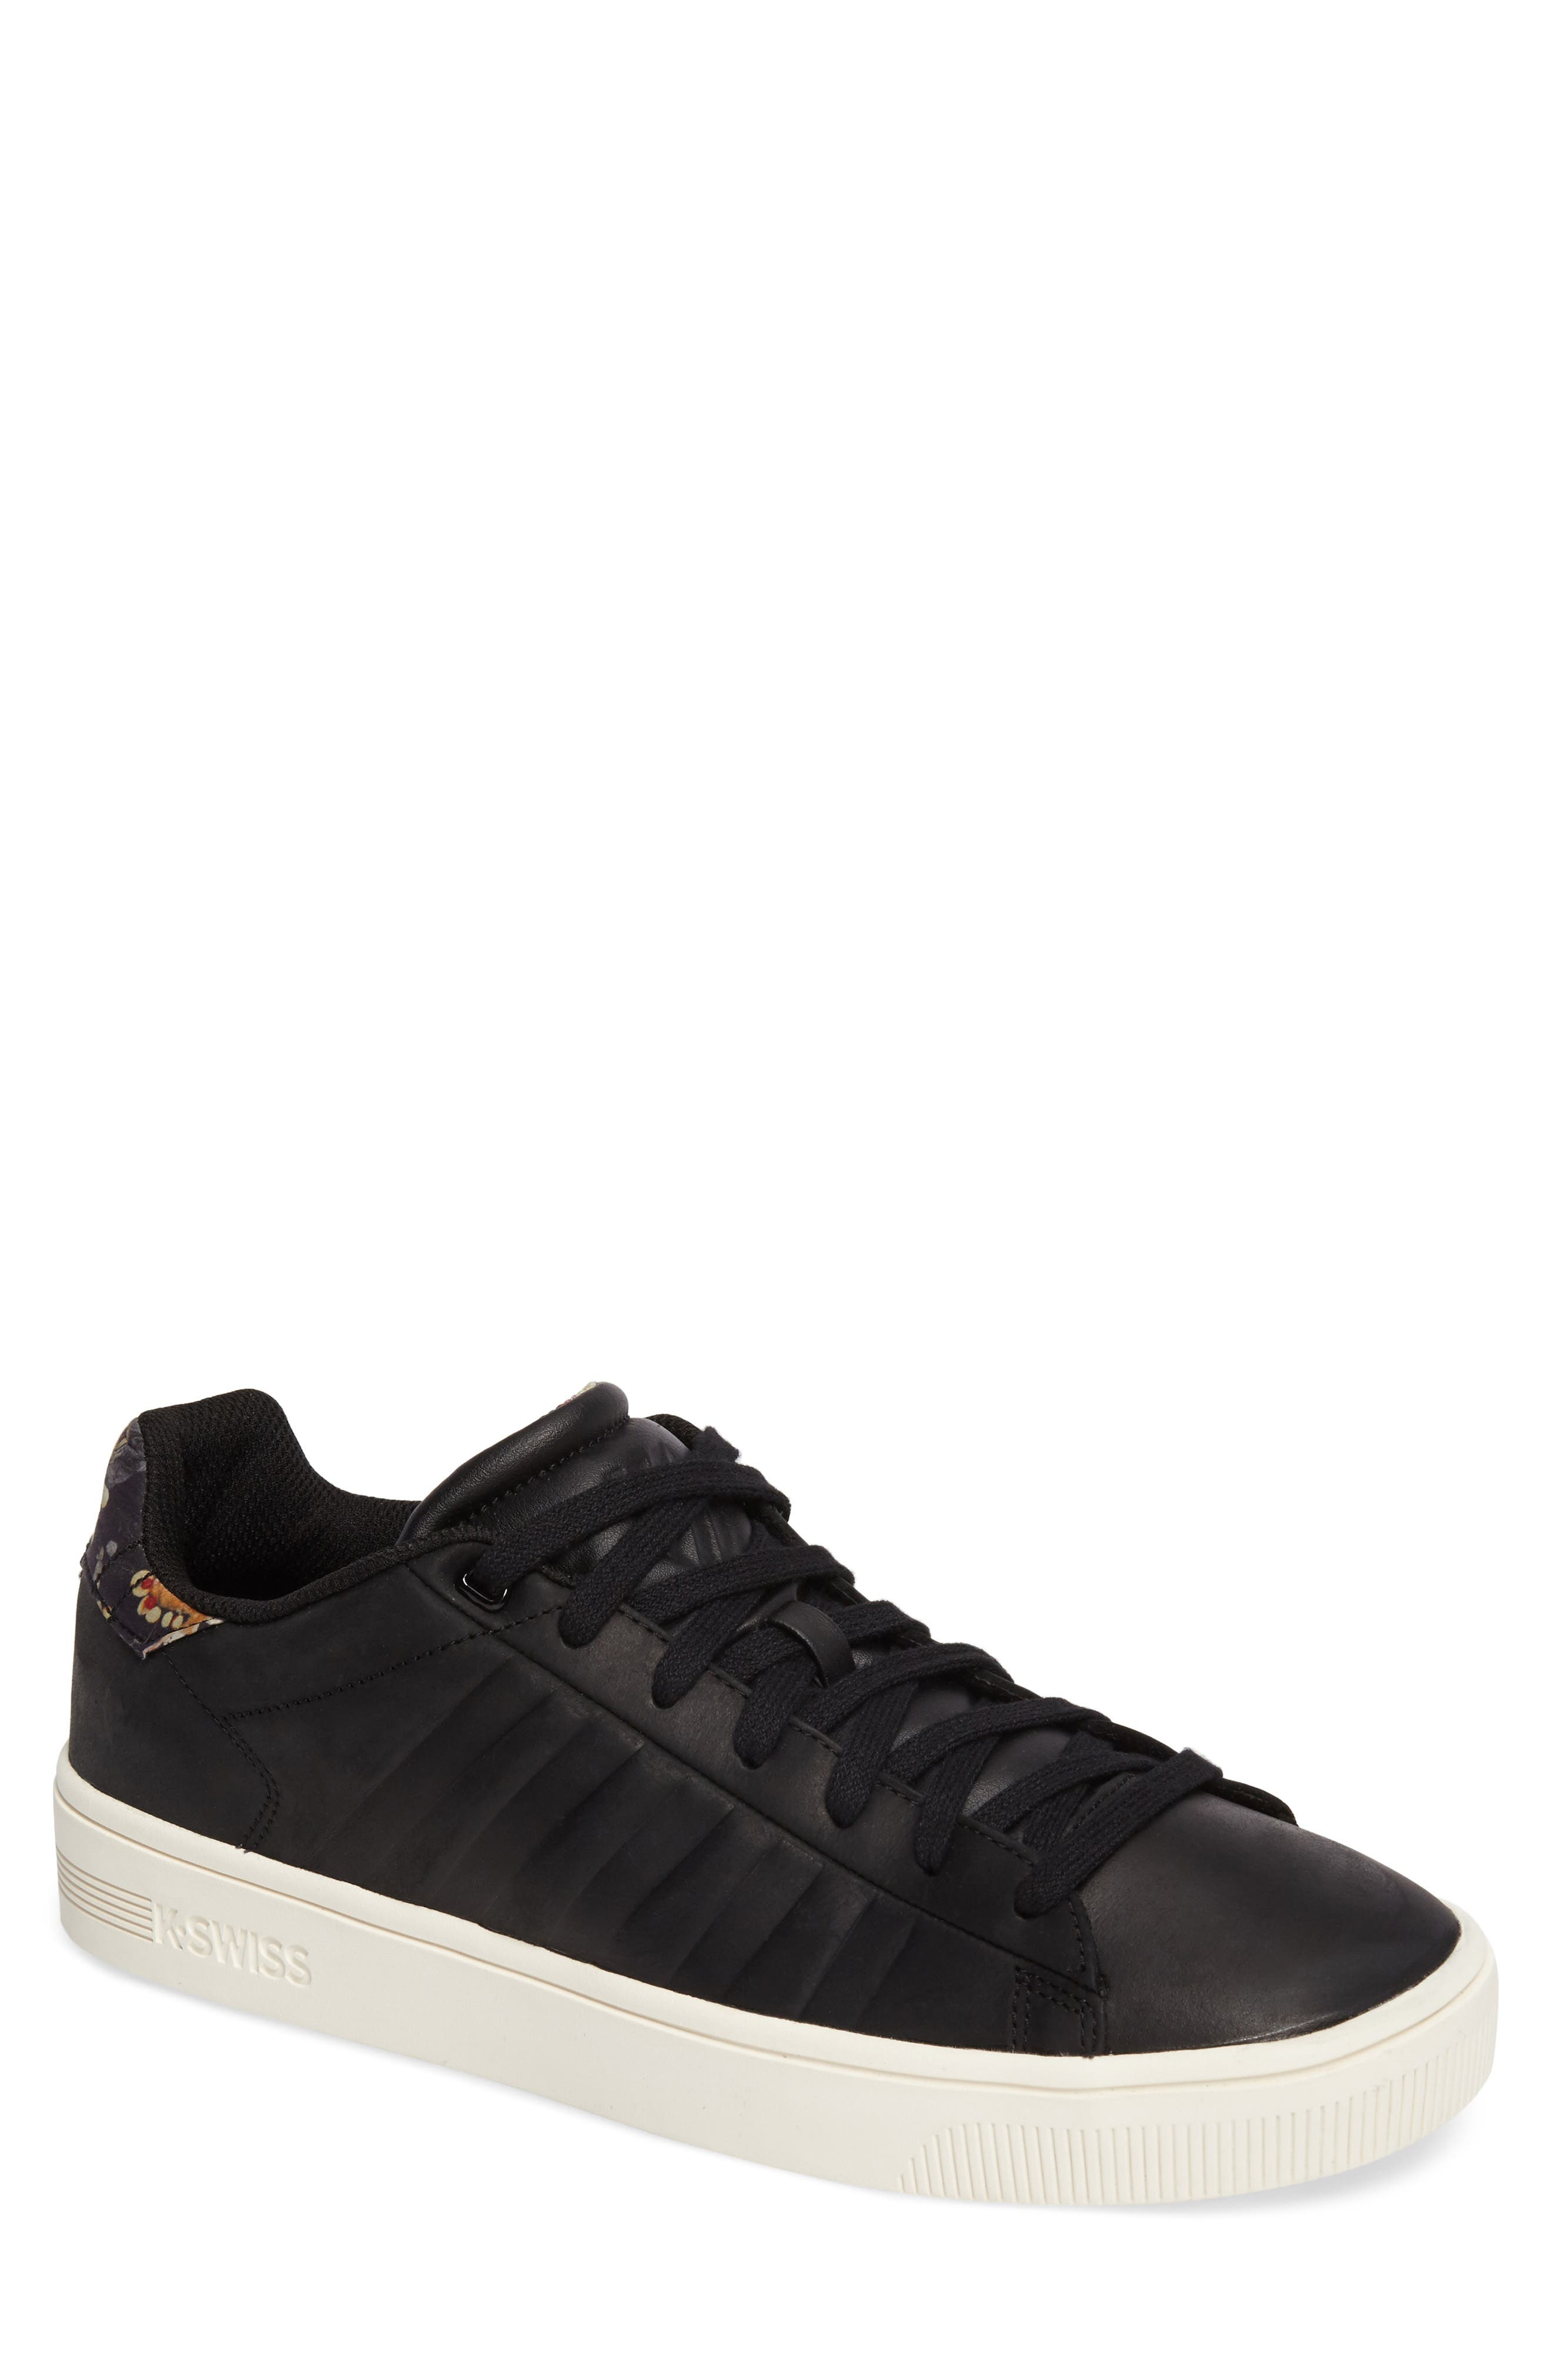 Court Frasco<sup>™</sup> Liberty Sneaker,                         Main,                         color,